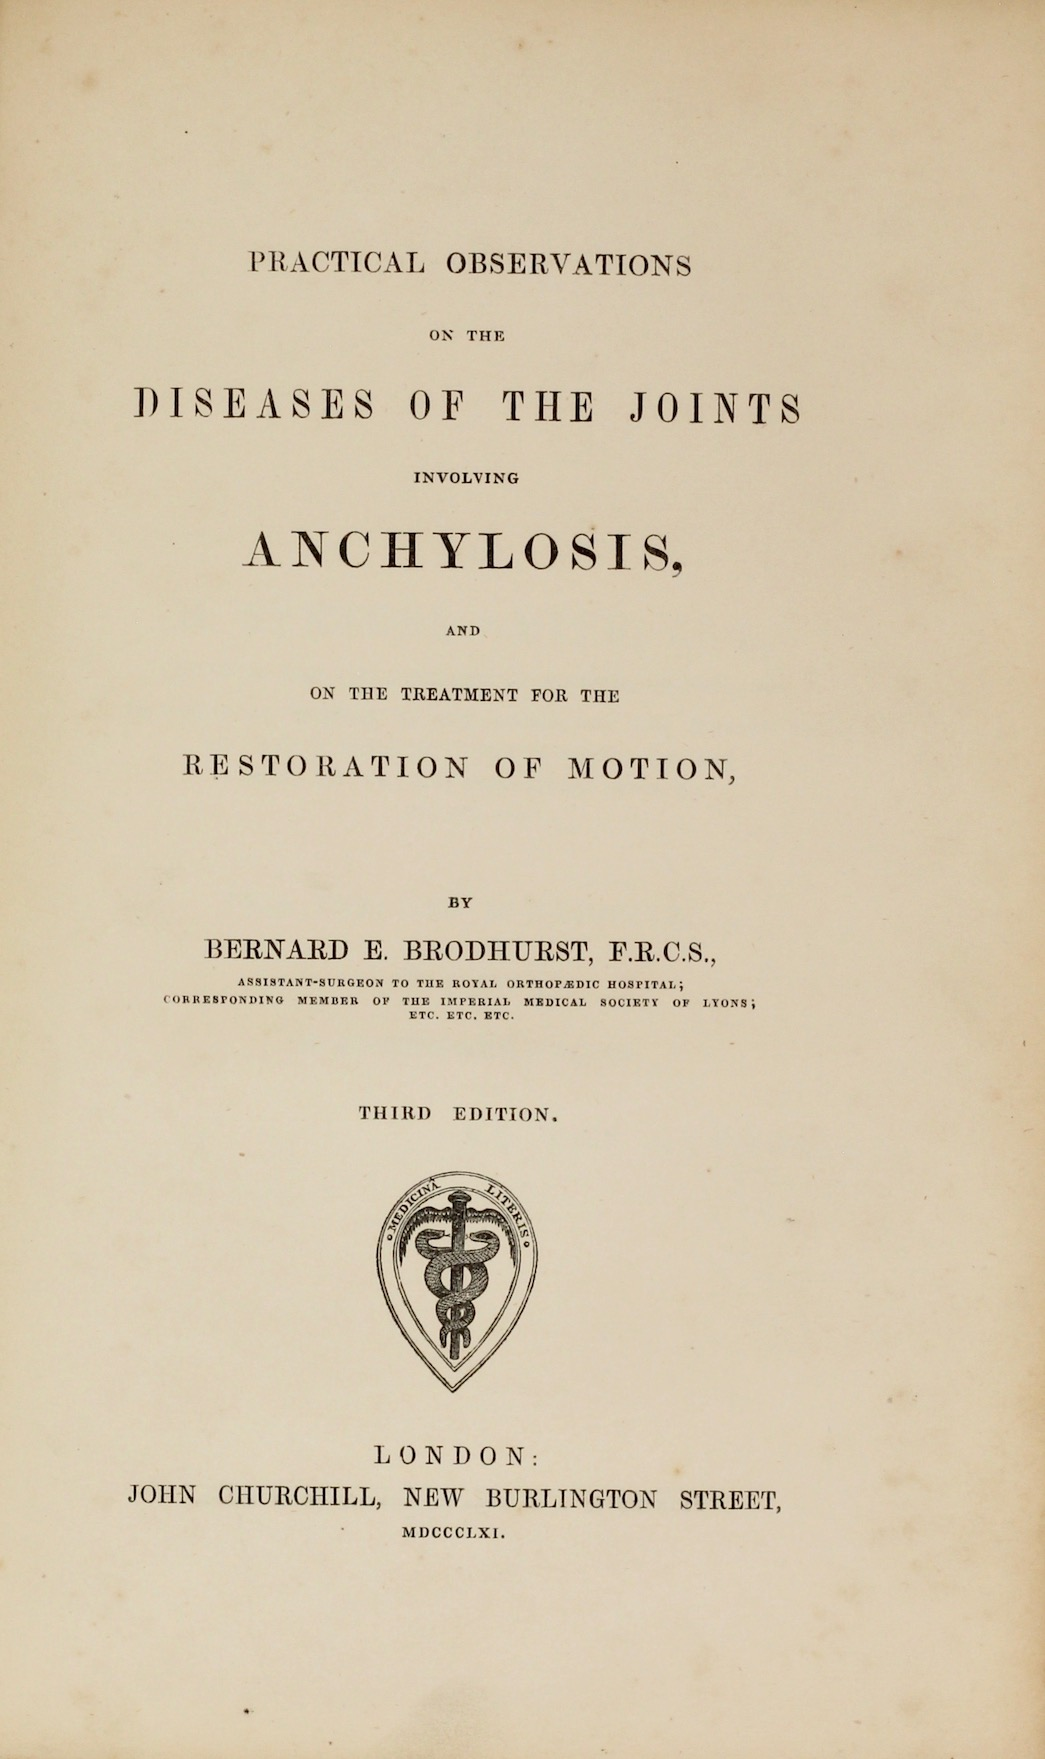 Bernard E. Brodhurst: Practical Observations on the Diseases of the Joints, c.1865. £125